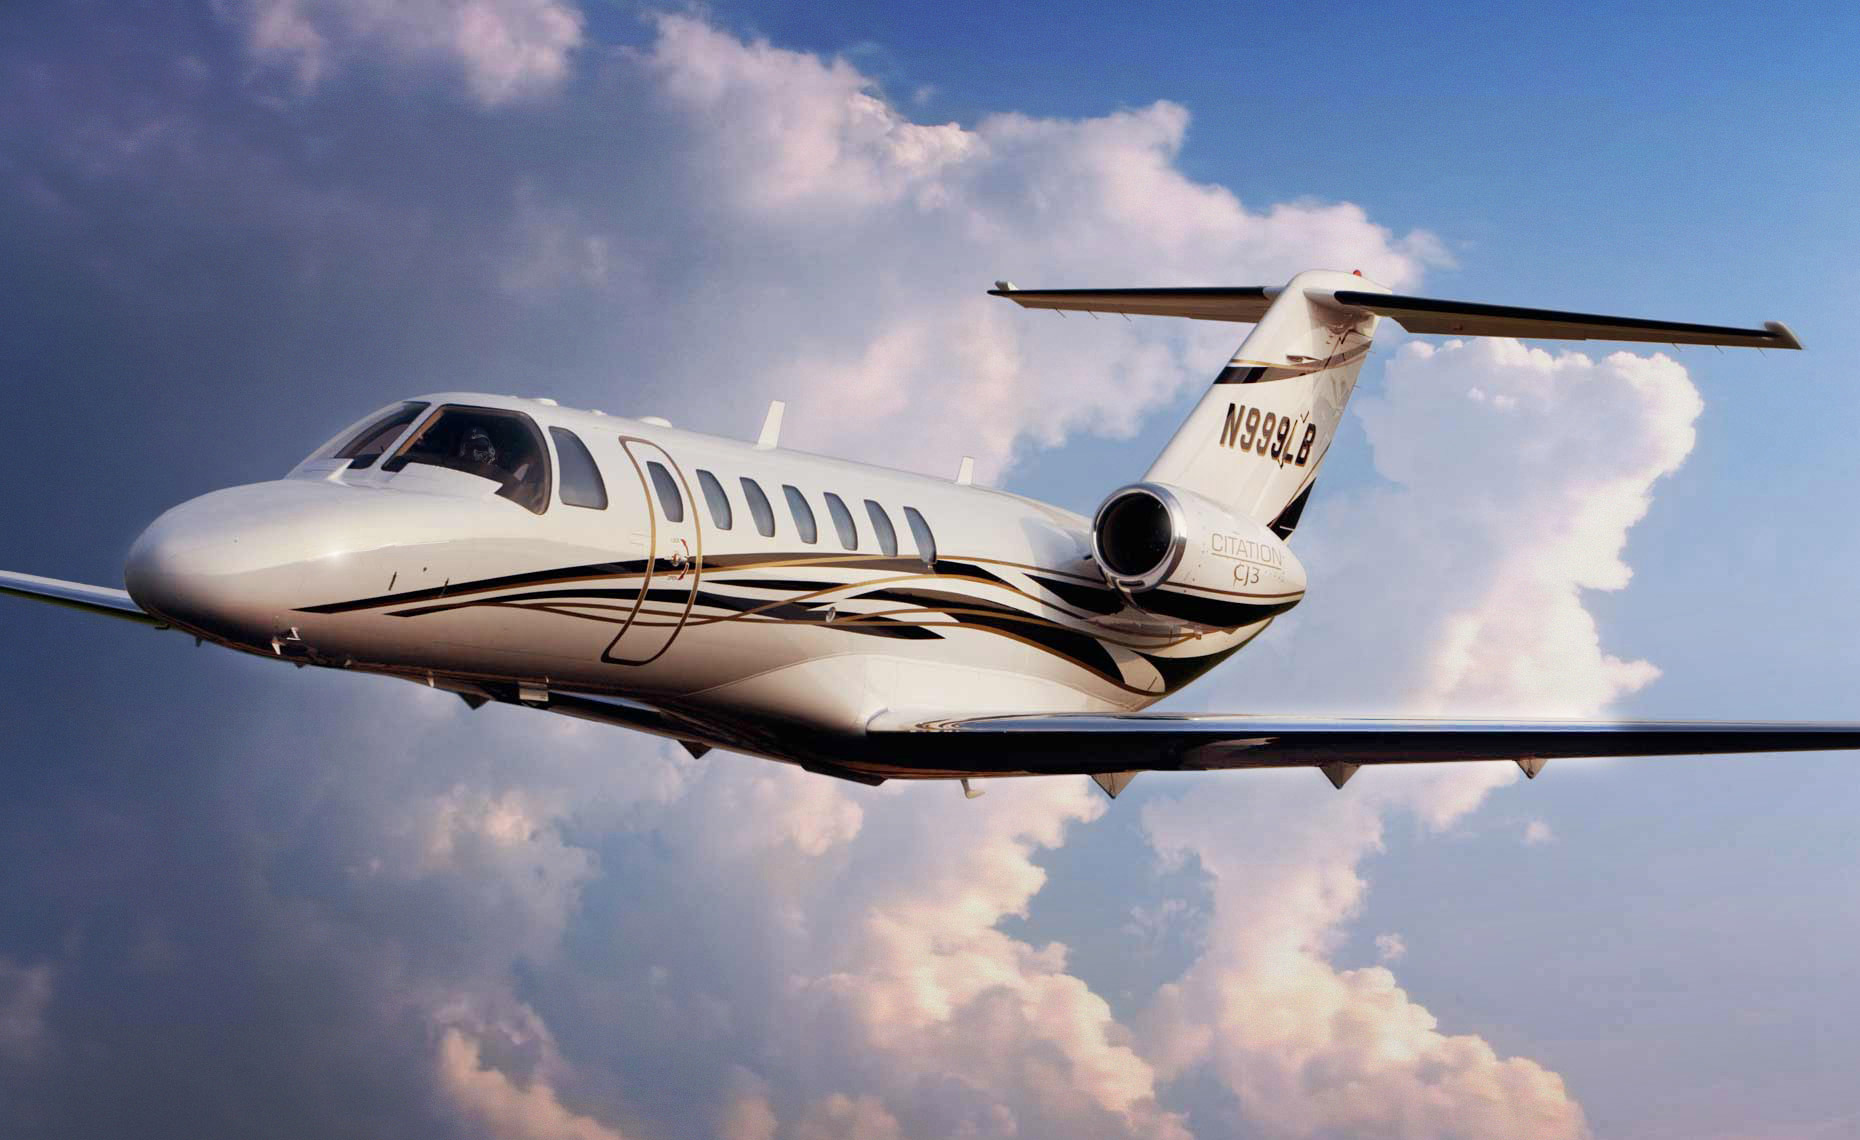 Cessna-Citation-in-flight-upsate